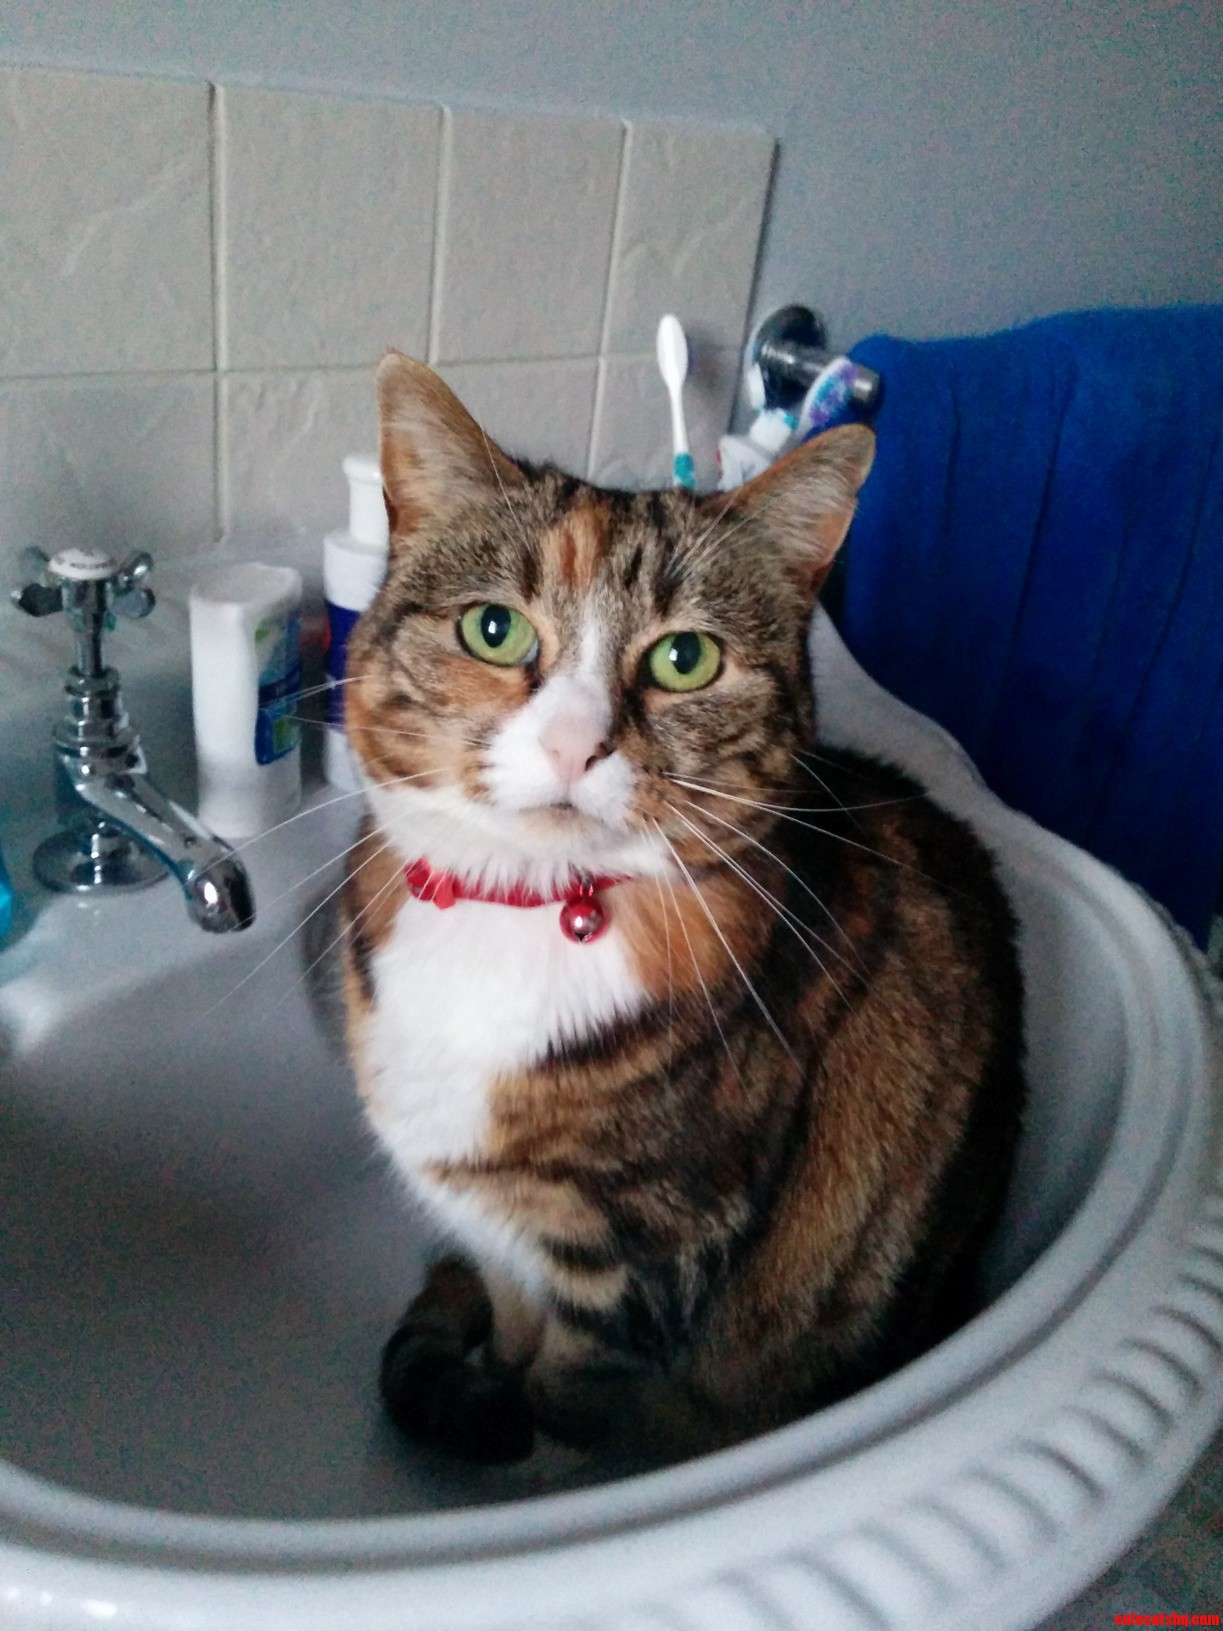 So apparently cats like sinks now.